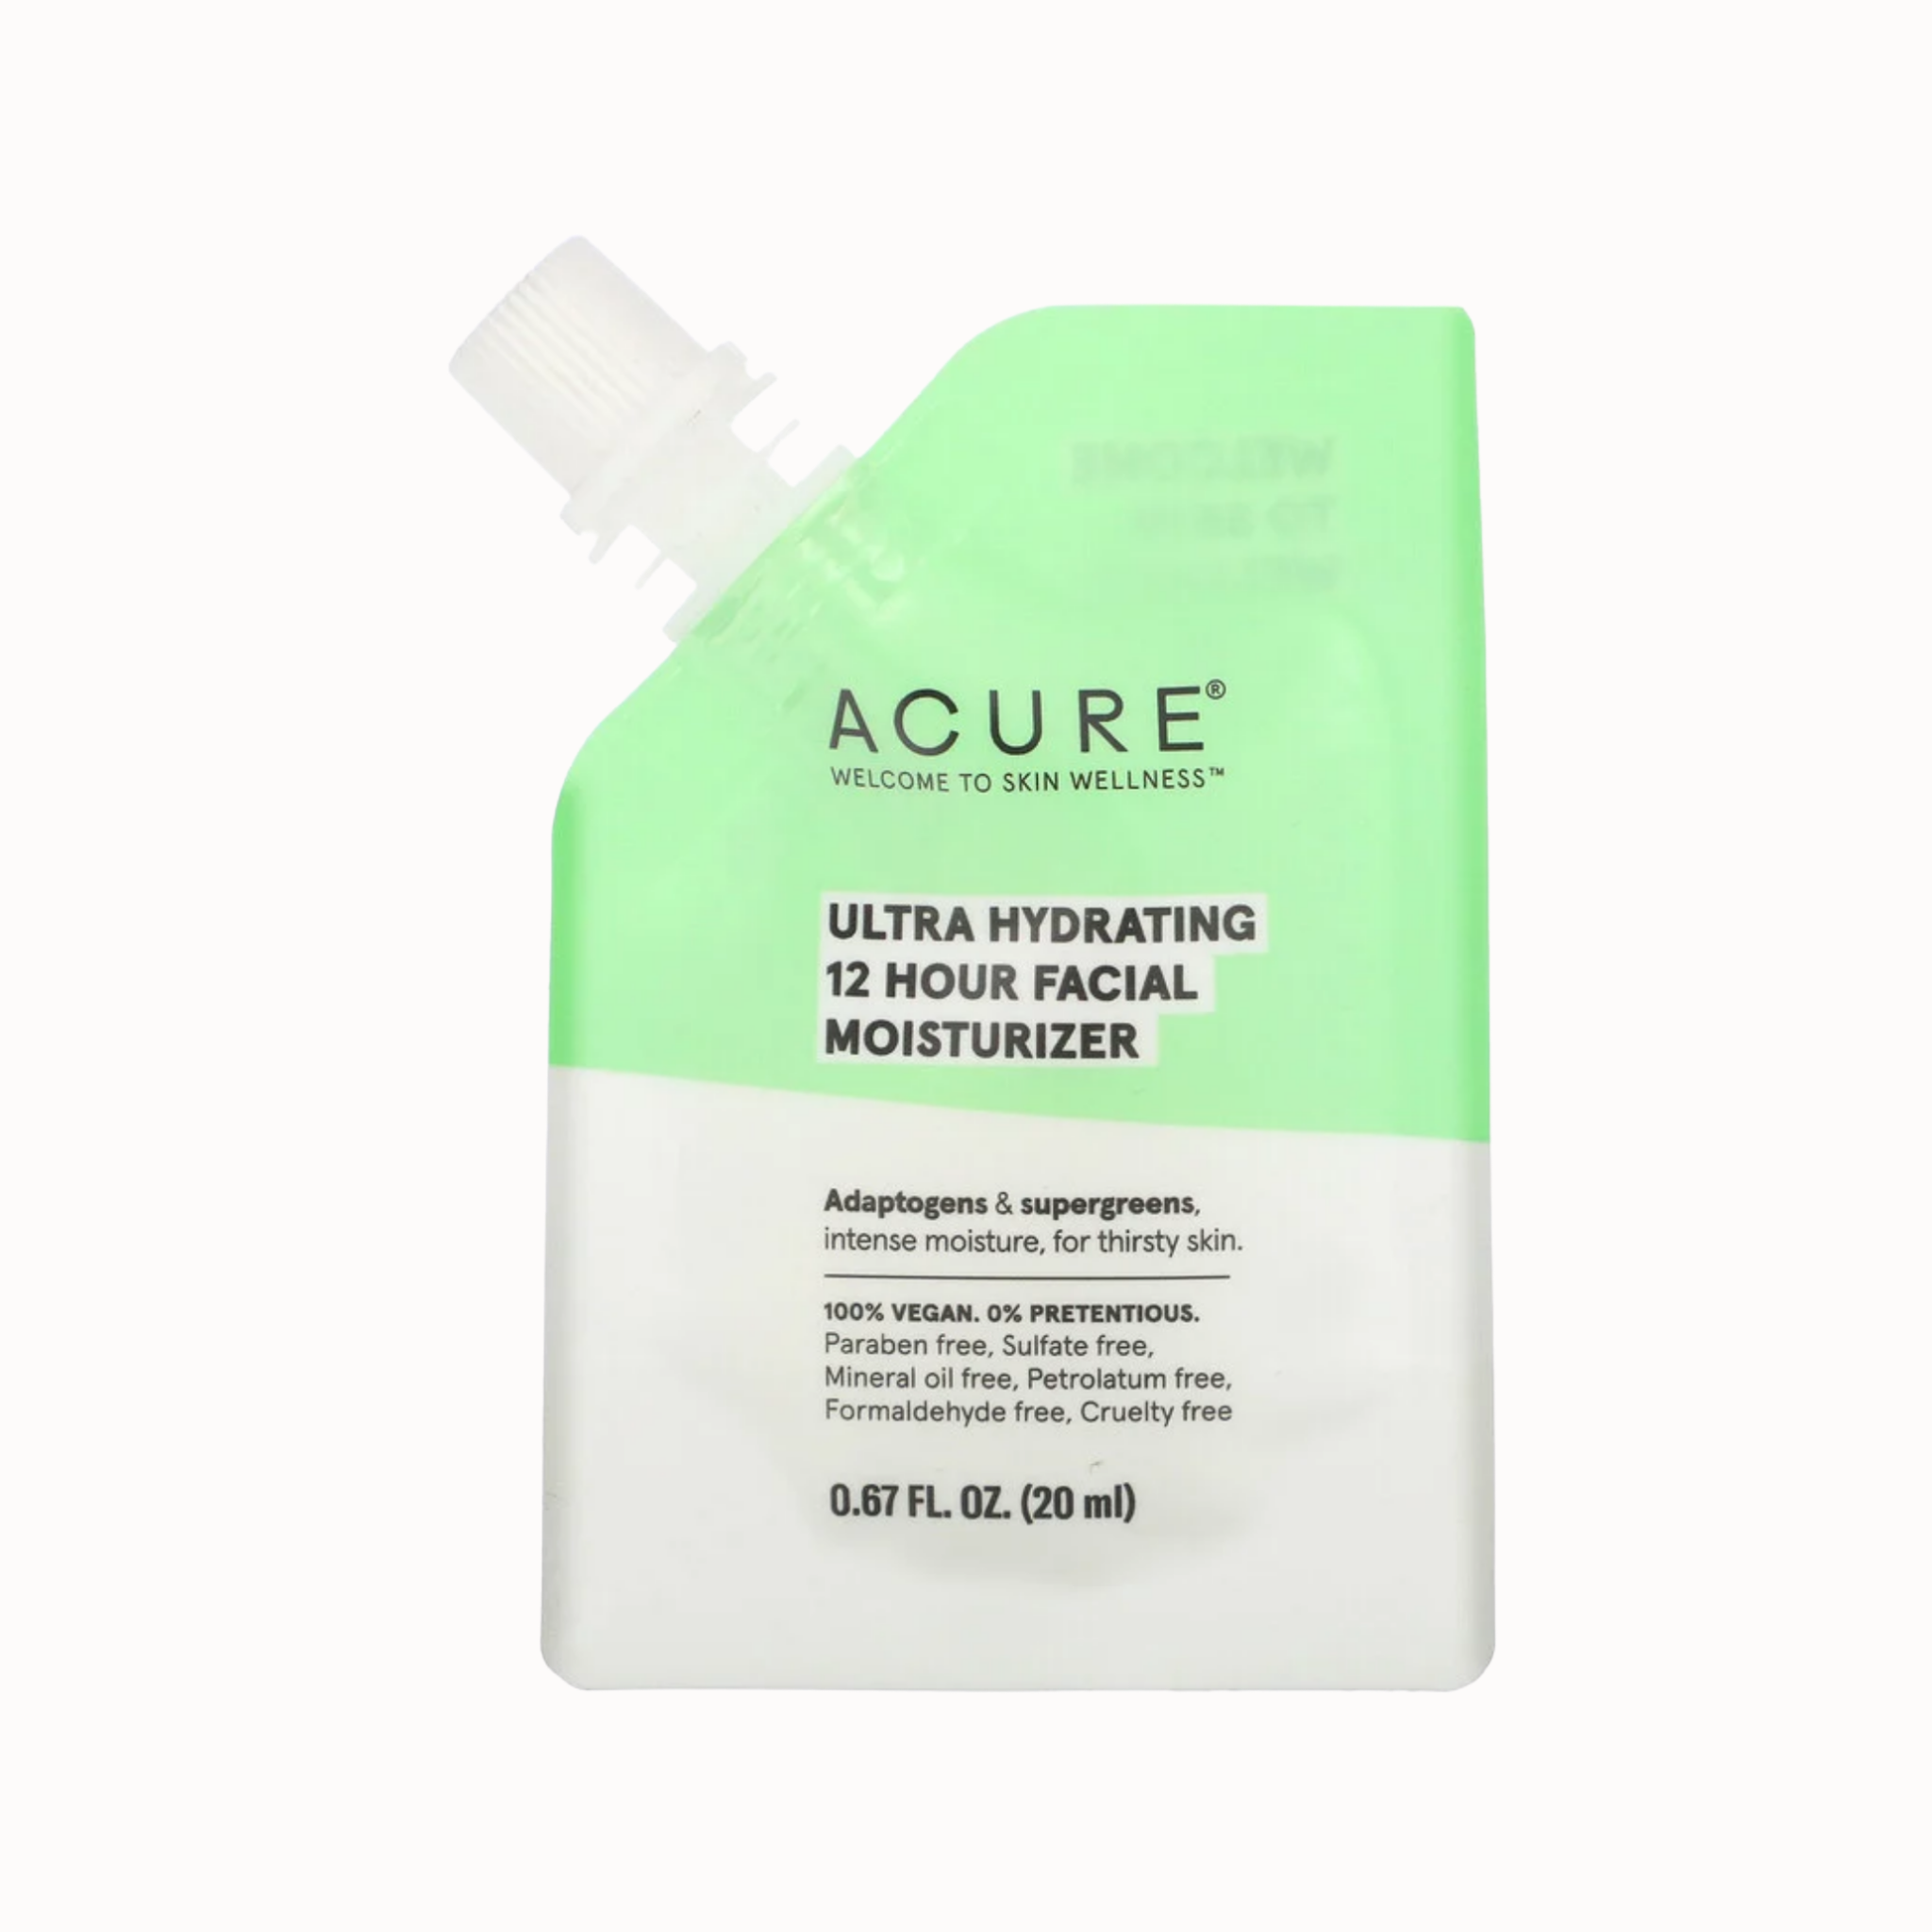 ULTRA HYDRATING 12 HOUR FACIAL MOISTURIZER | 20 ML